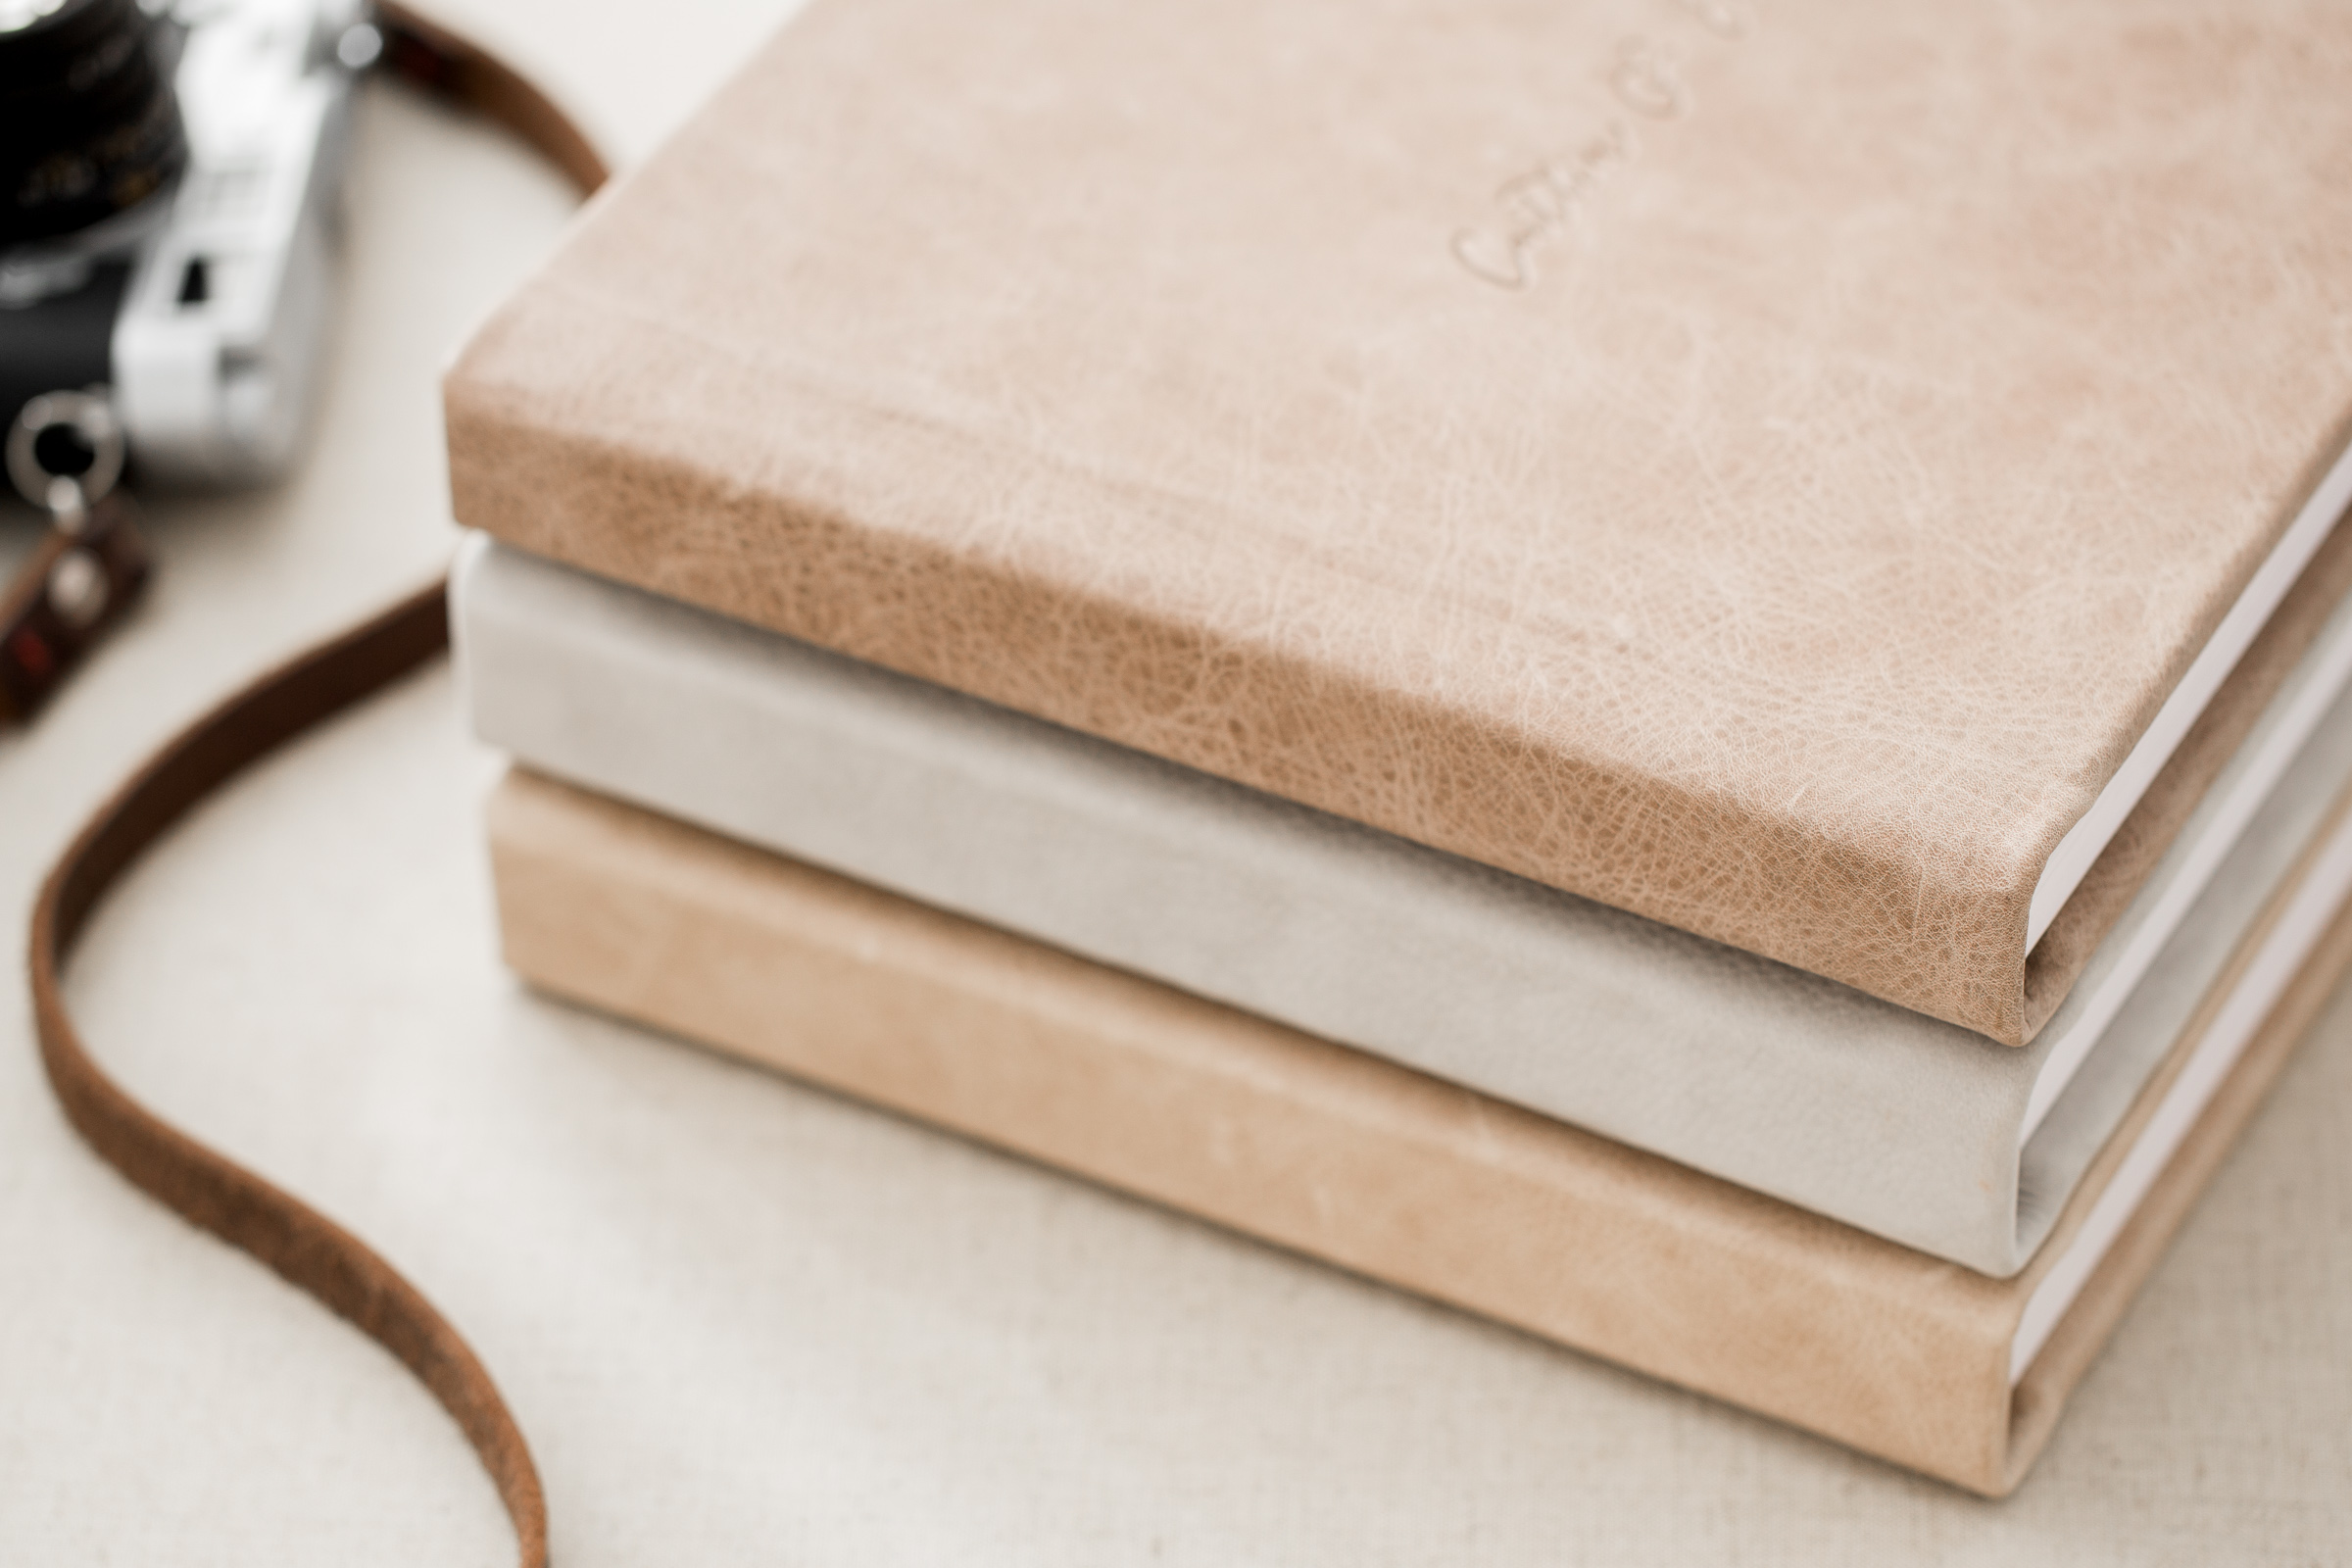 Leather - Leather albums embody the timeless, classic look that will always inspire. Choose from several genuine Italian grade leathers.